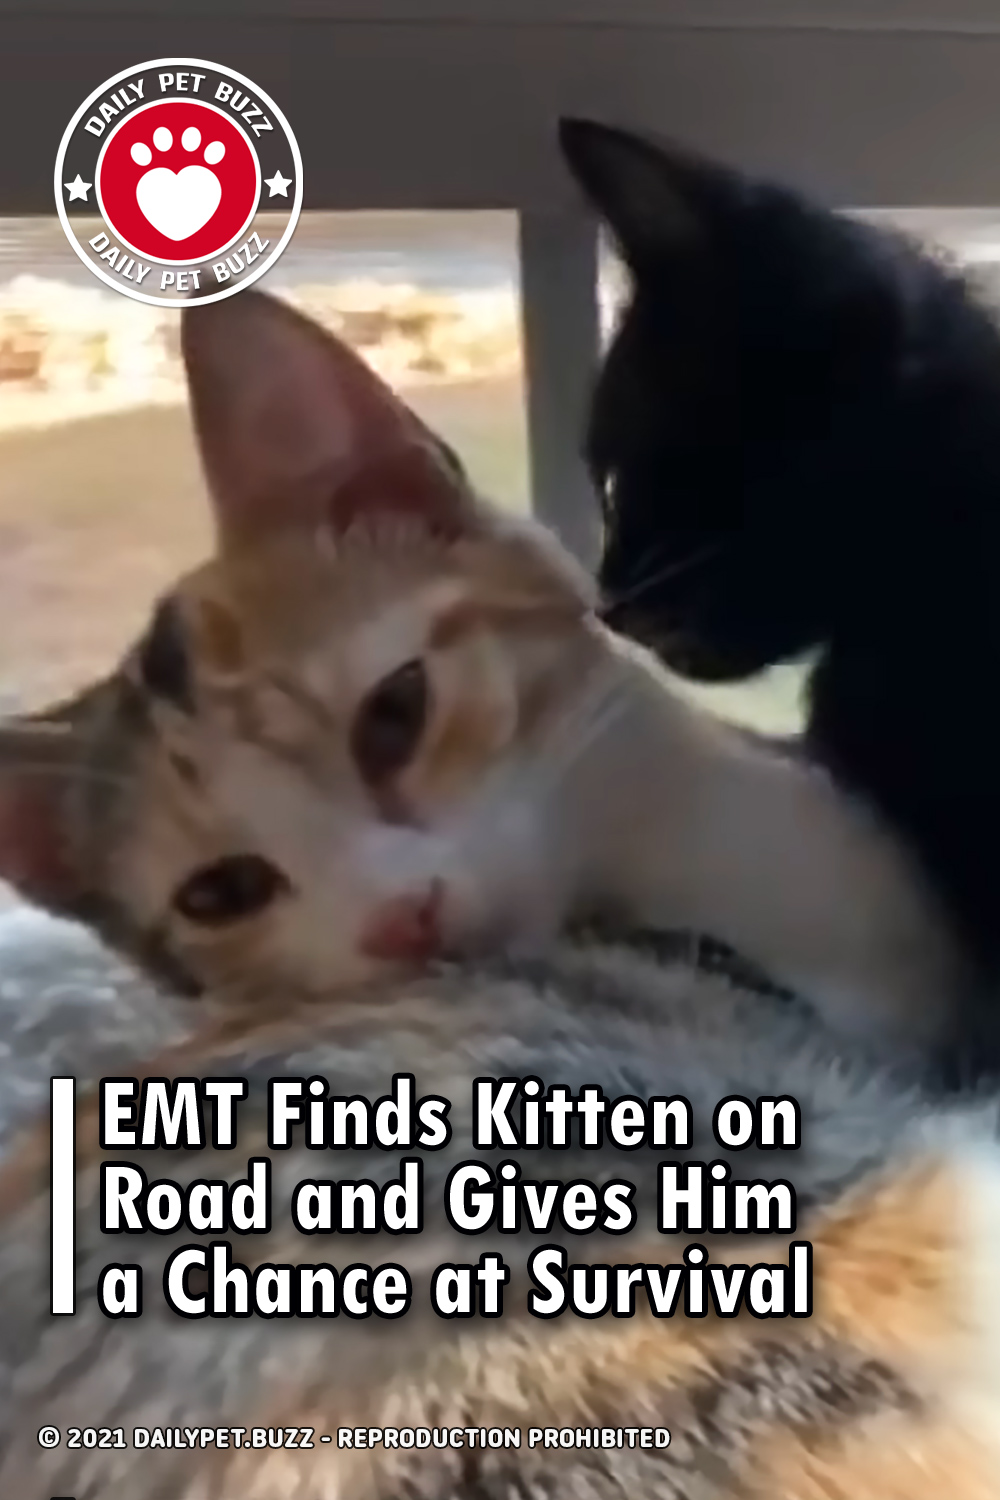 EMT Finds Kitten on Road and Gives Him a Chance at Survival